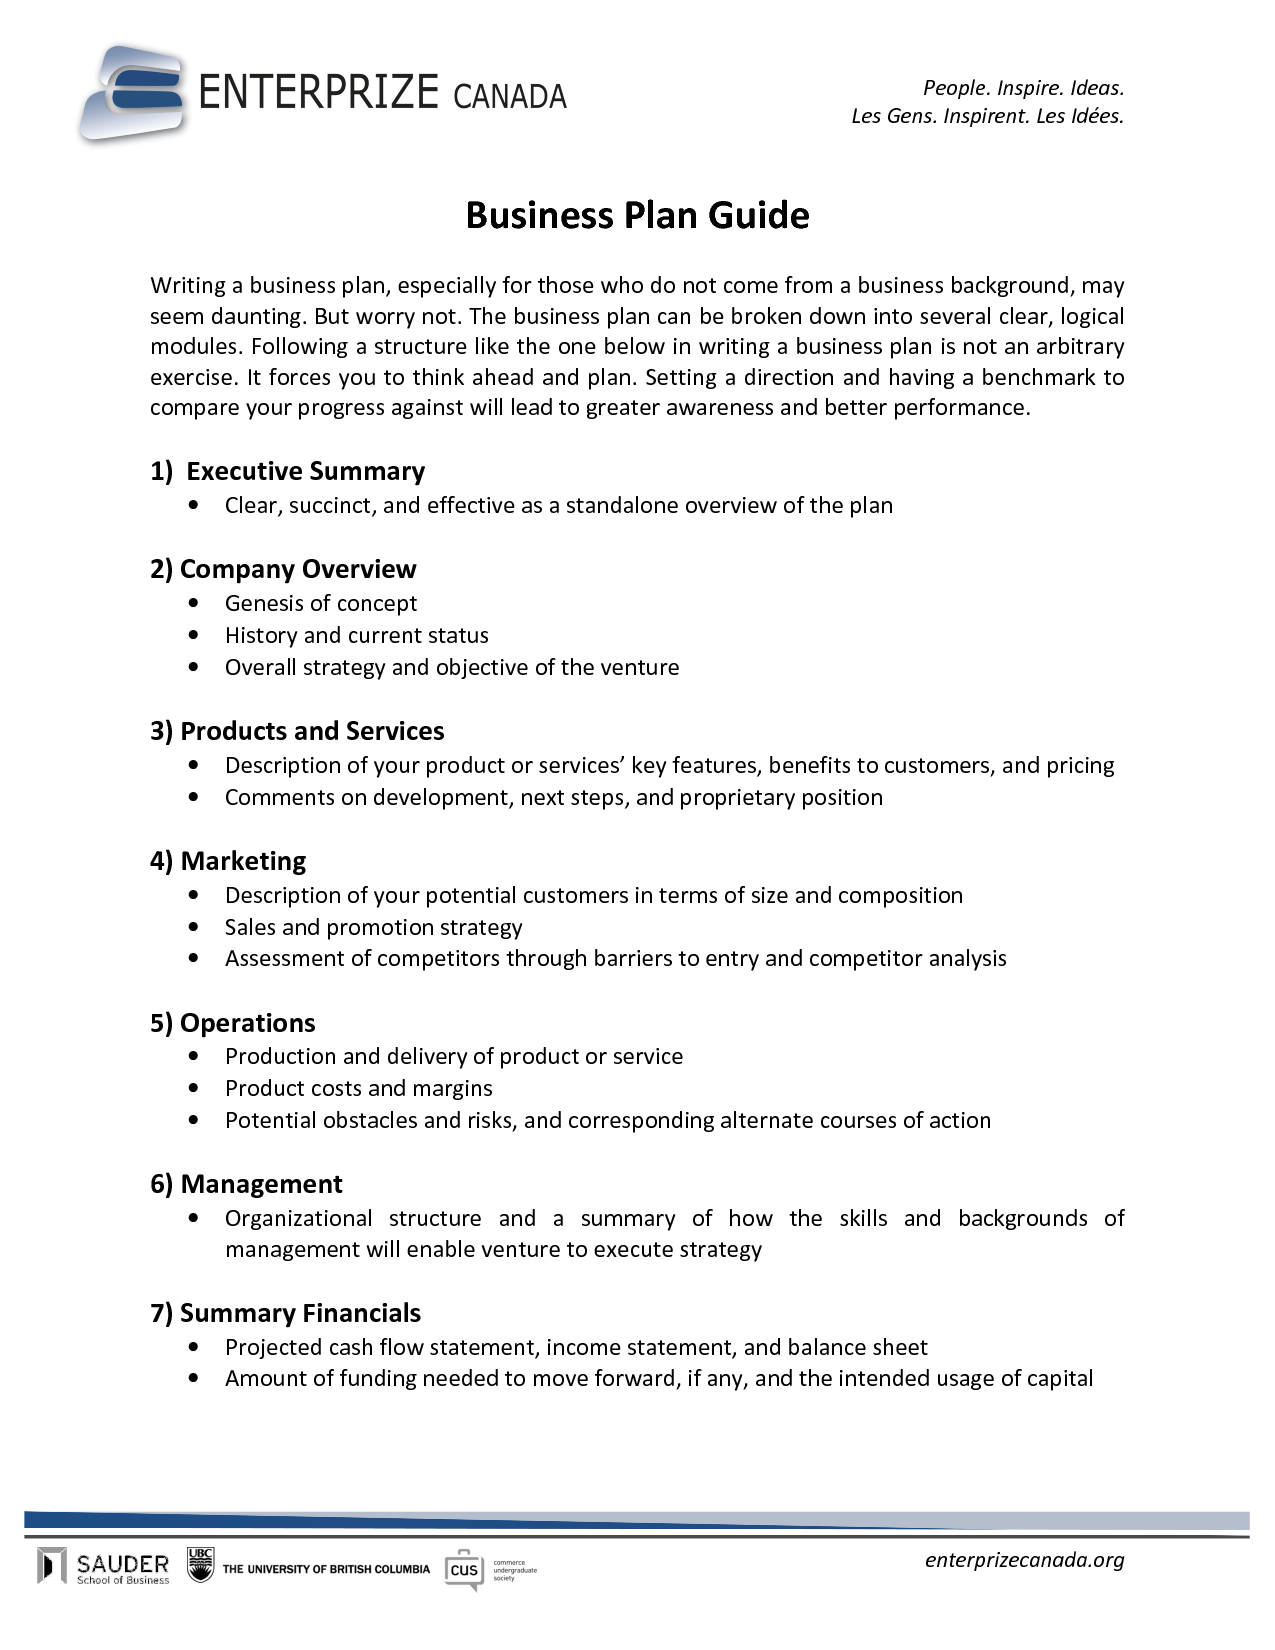 Creating the Business Overview Section of a Business Plan